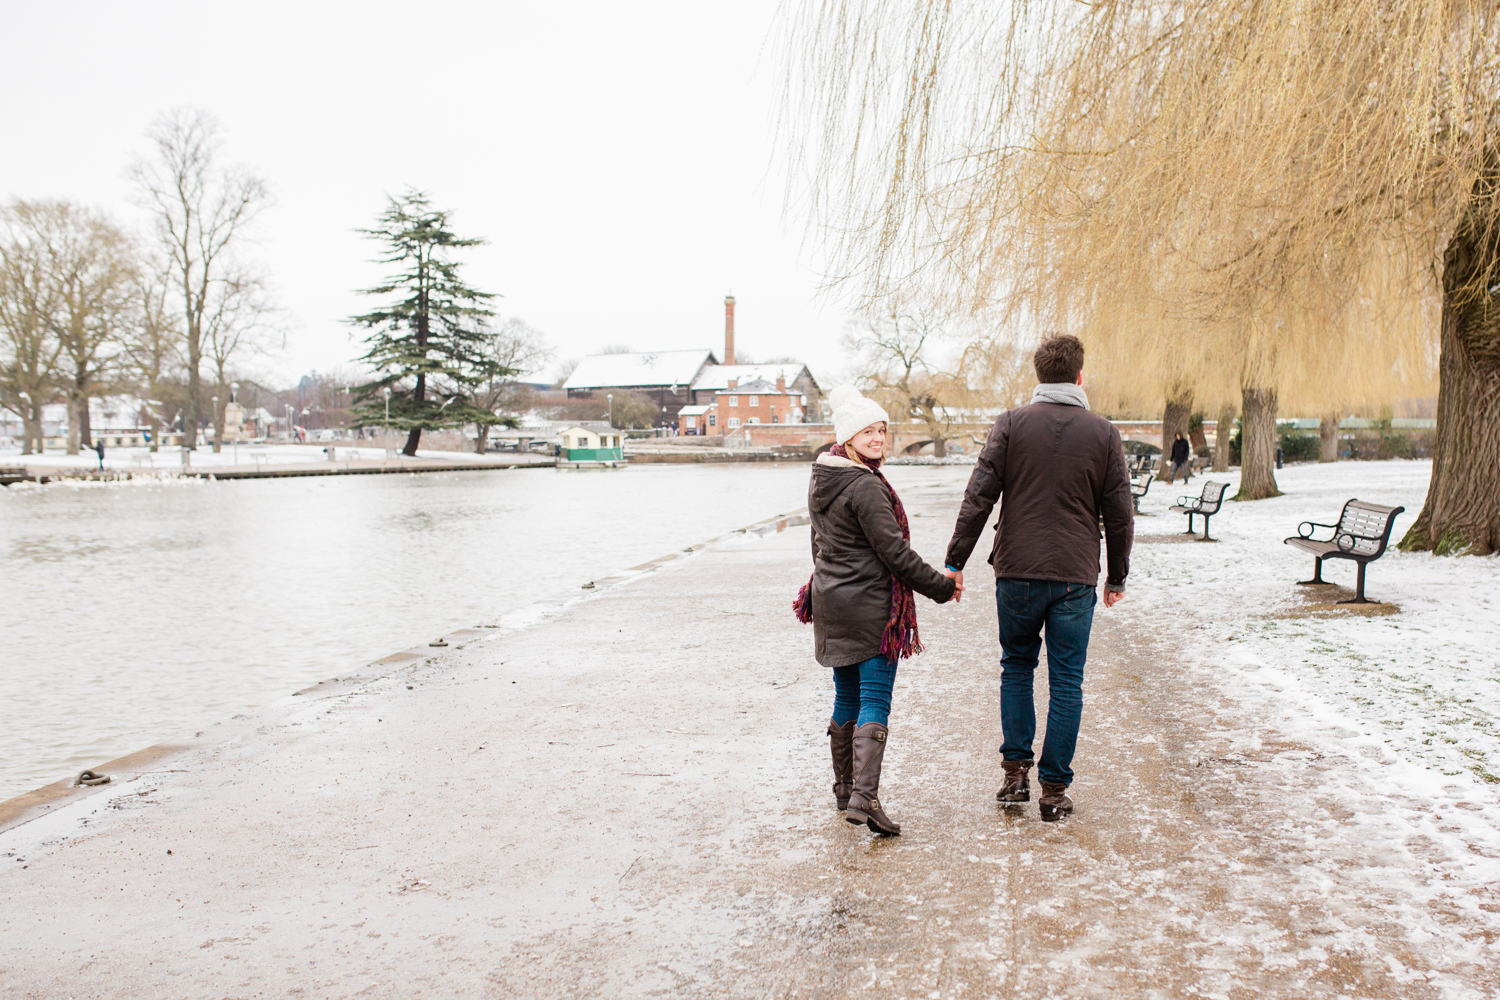 Alice & James - Stratford Upon Avon Engagement shoot - Sophie Evans Photography-19.jpg